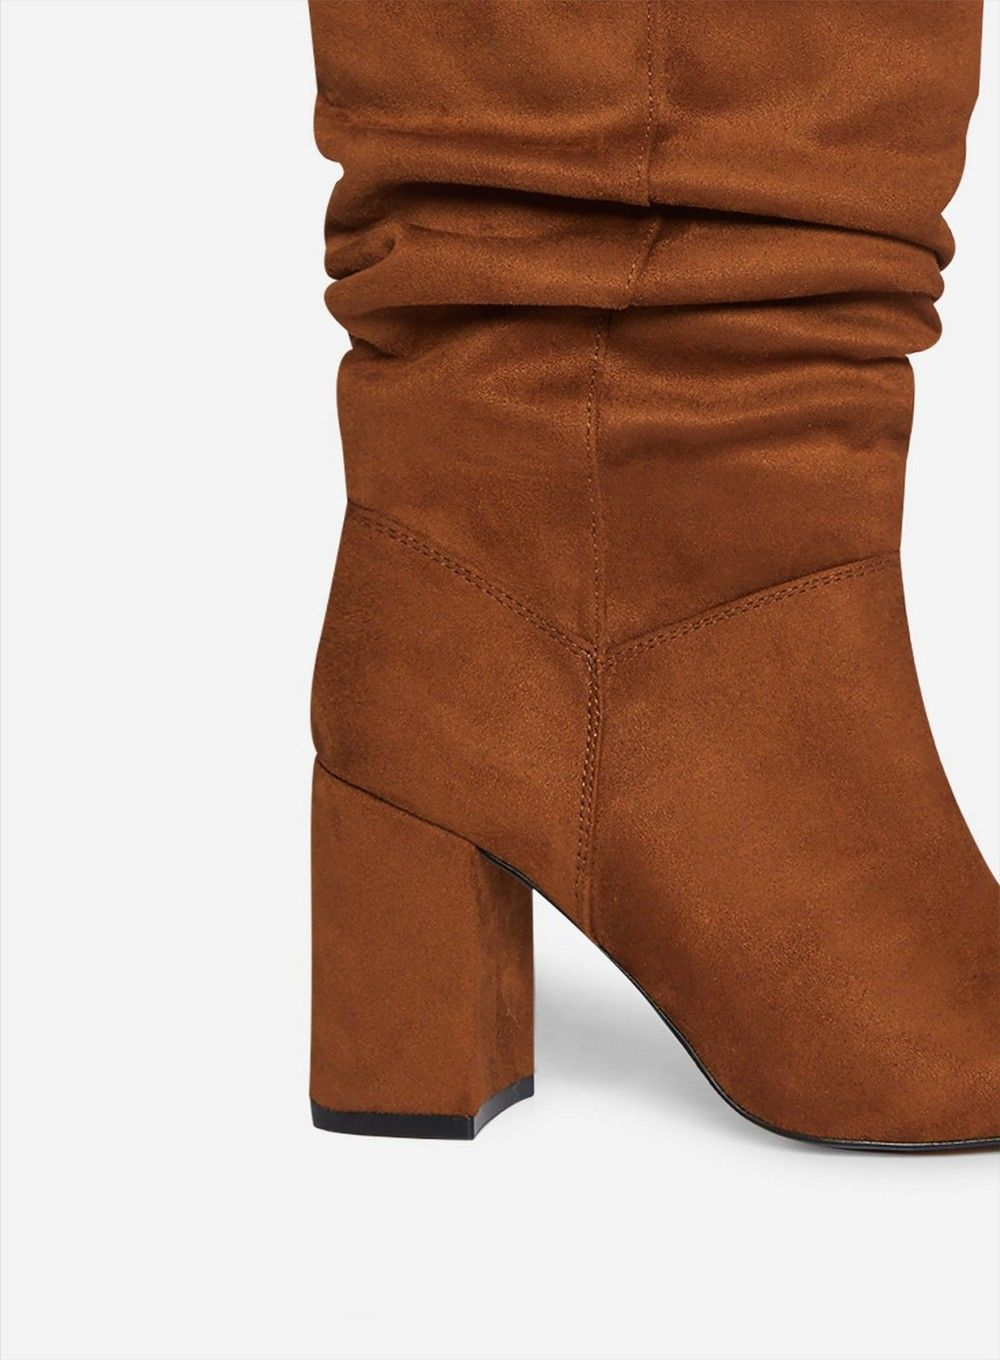 Dorothy Perkins Womens Brown Kinder Ruched Boots Winter Heeled Shoes Mid-Calf